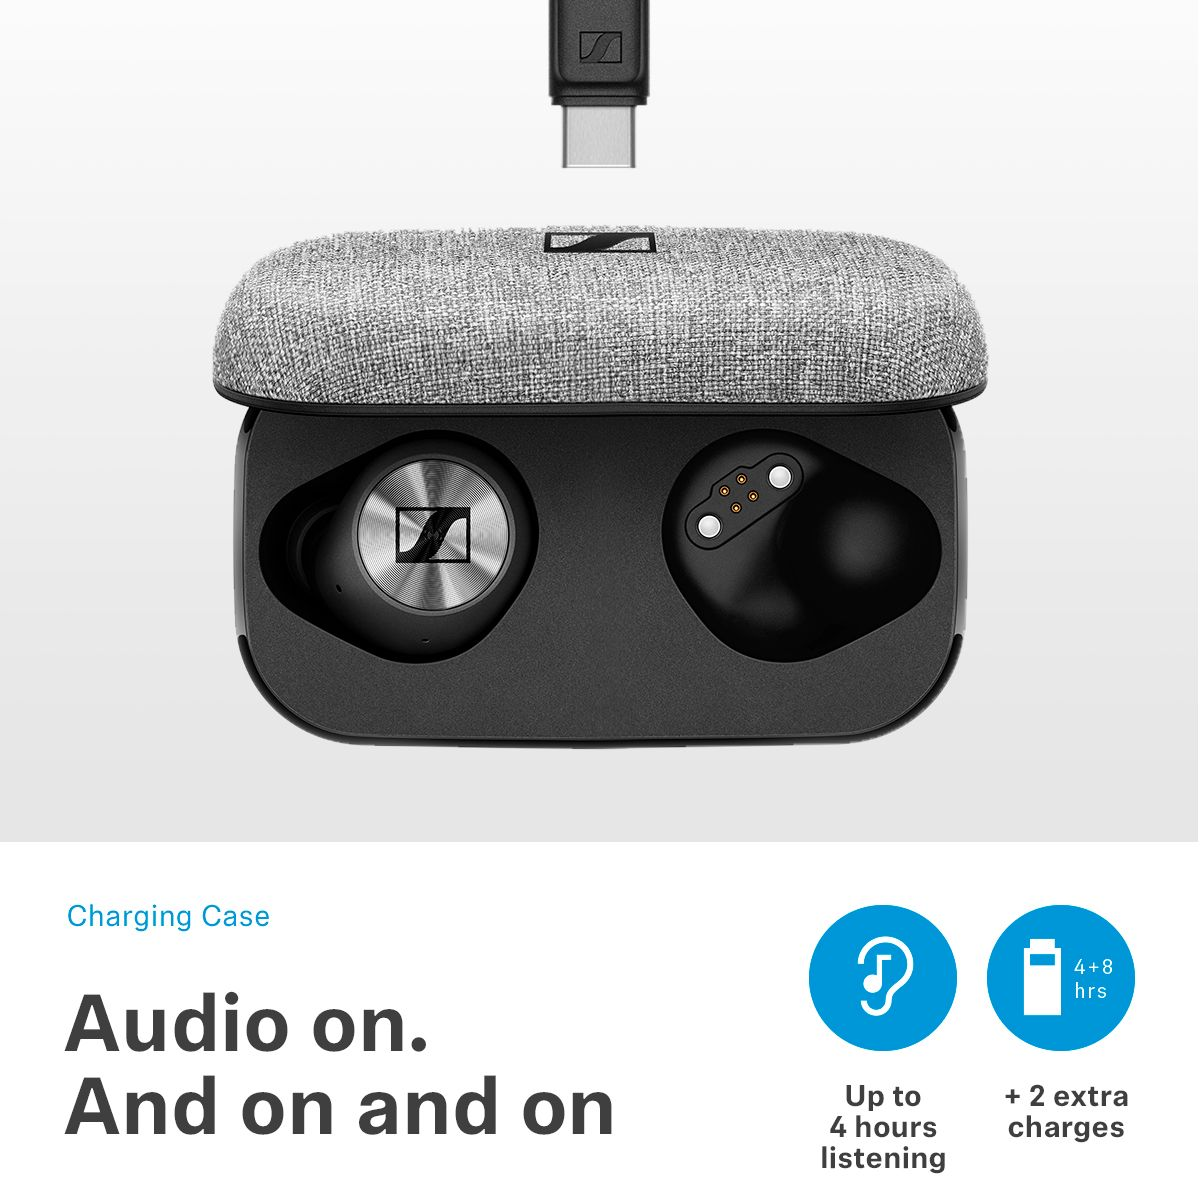 Sennheiser MOMENTUM True Wireless Earbud Headphones at Best Buy